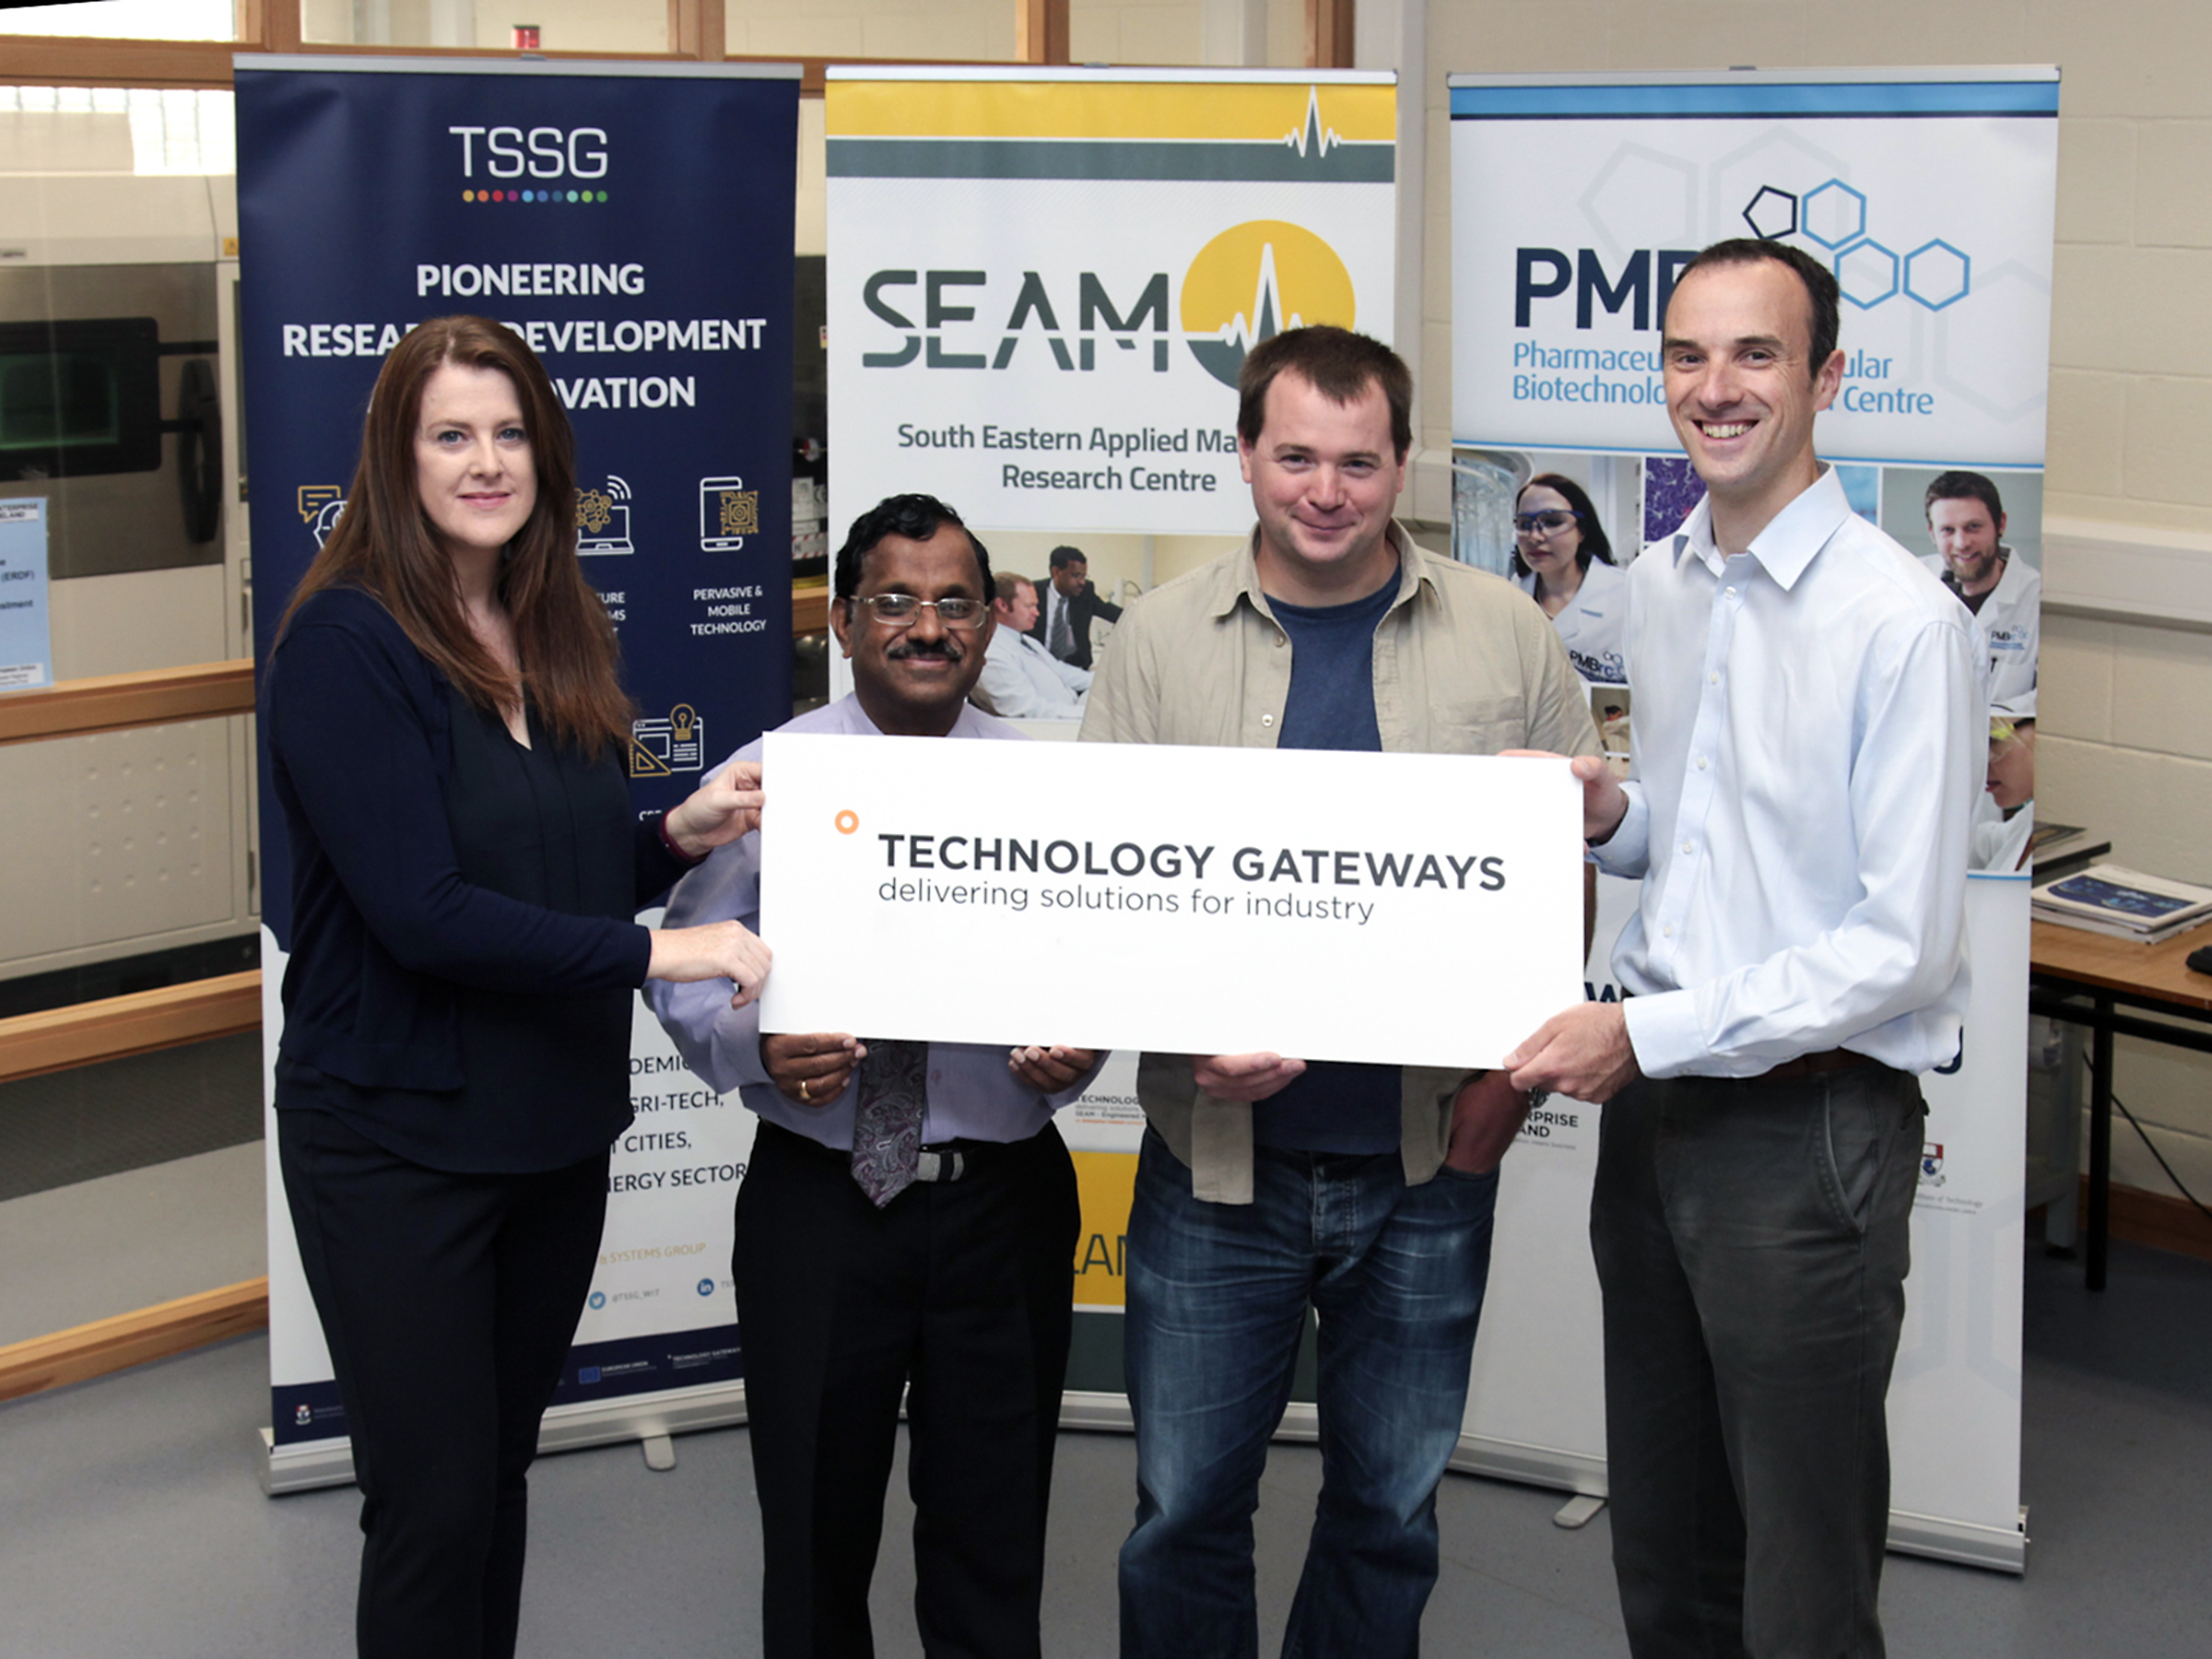 Pictured are representatives of WIT's three Tech Gateways. From left: Frances Cleary, MEPS Research Unit Manager at TSSG; SEAM Centre Director and Technology Gateway Manager Dr Ramesh Raghavendra; Jerry Horgan, infrastructure manager, TSSG; PMBRC Manager Dr Niall O'Reilly. Photo: George Goulding